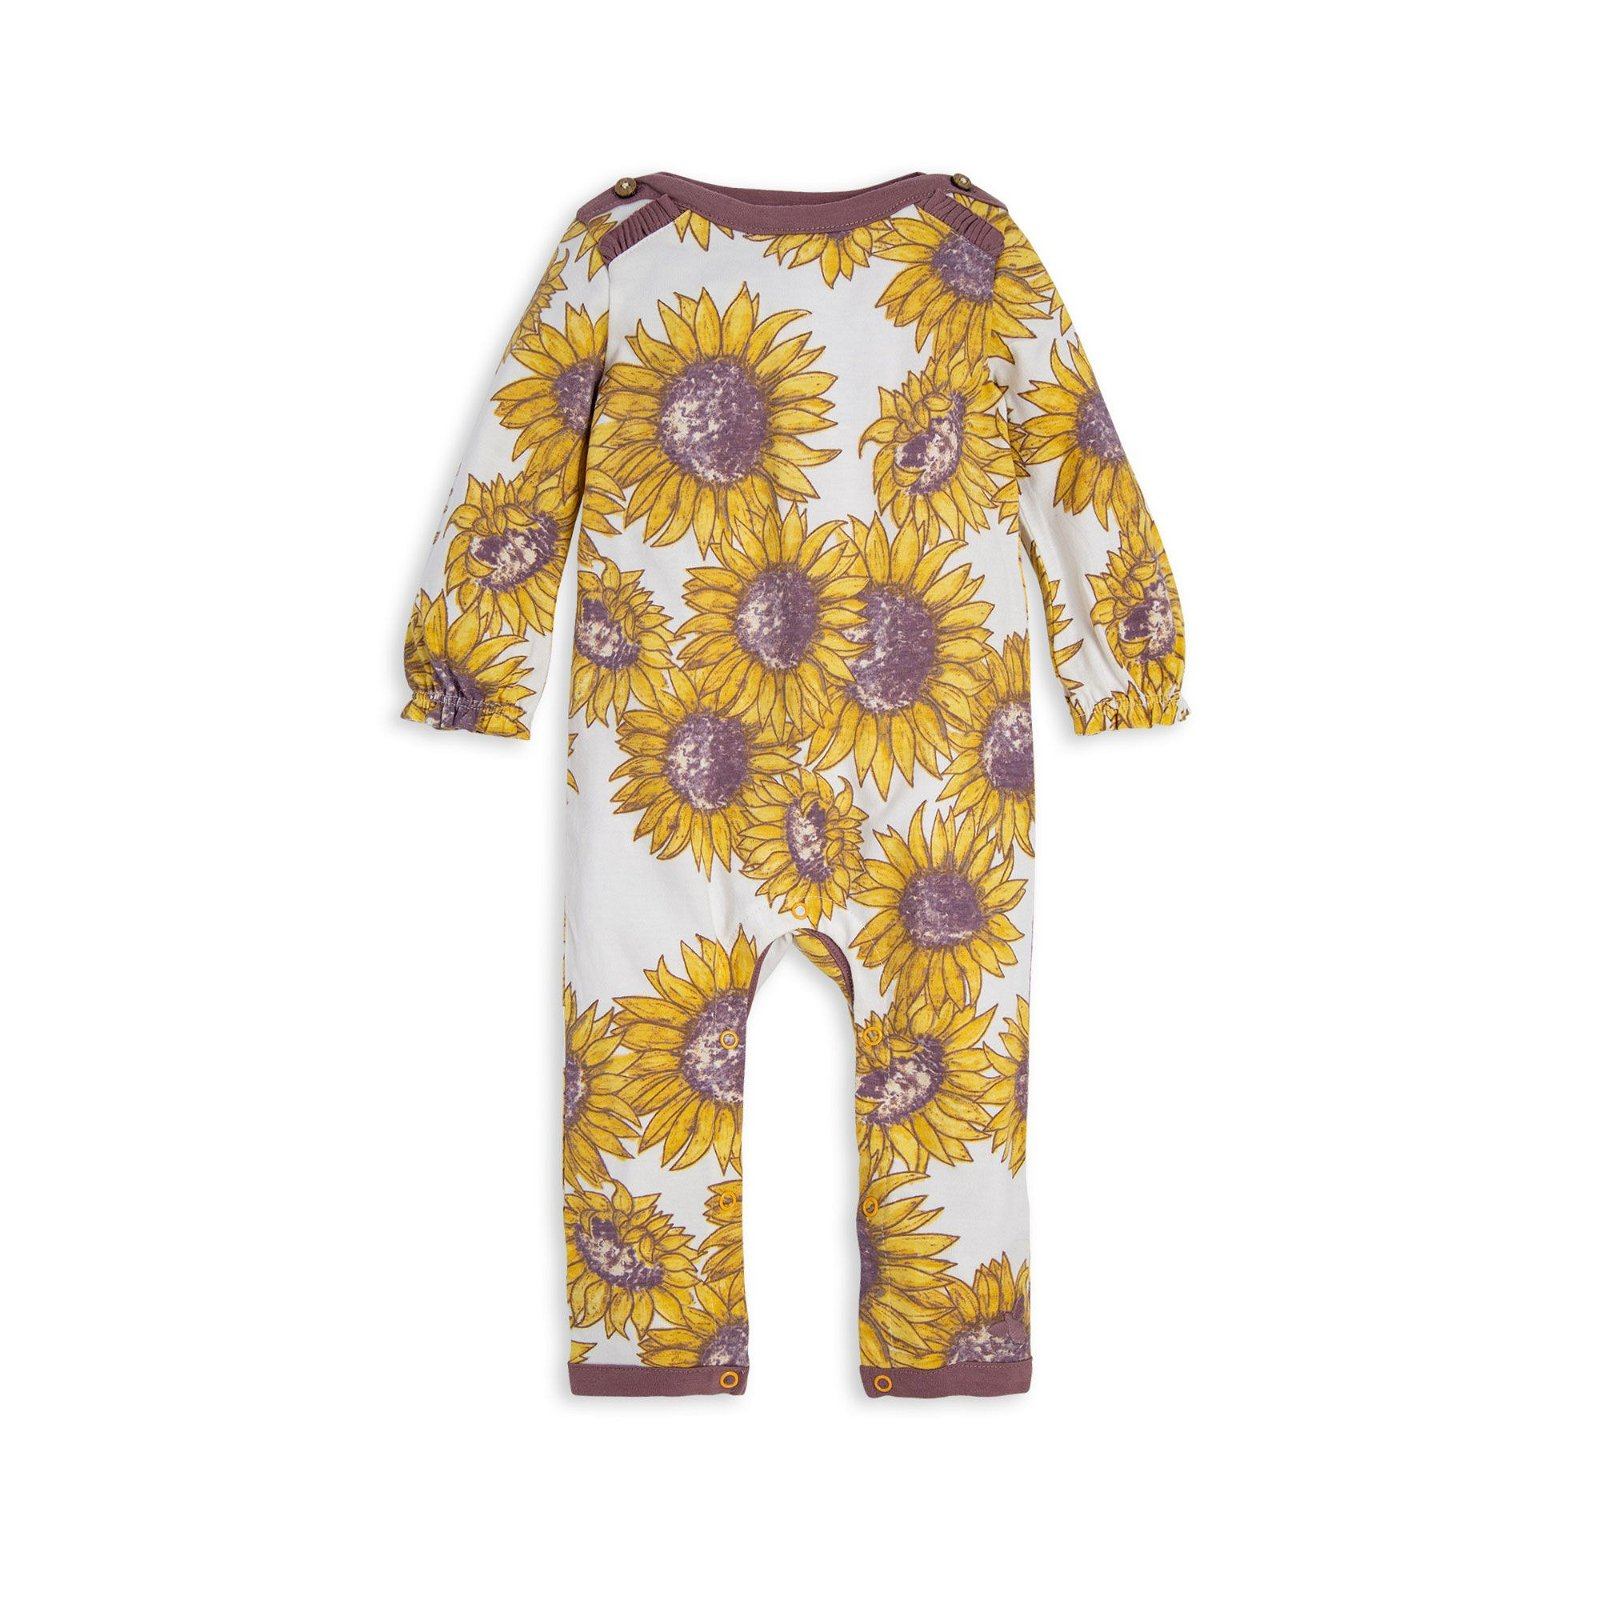 Giant Sunflowers Organic Baby Jumpsuit